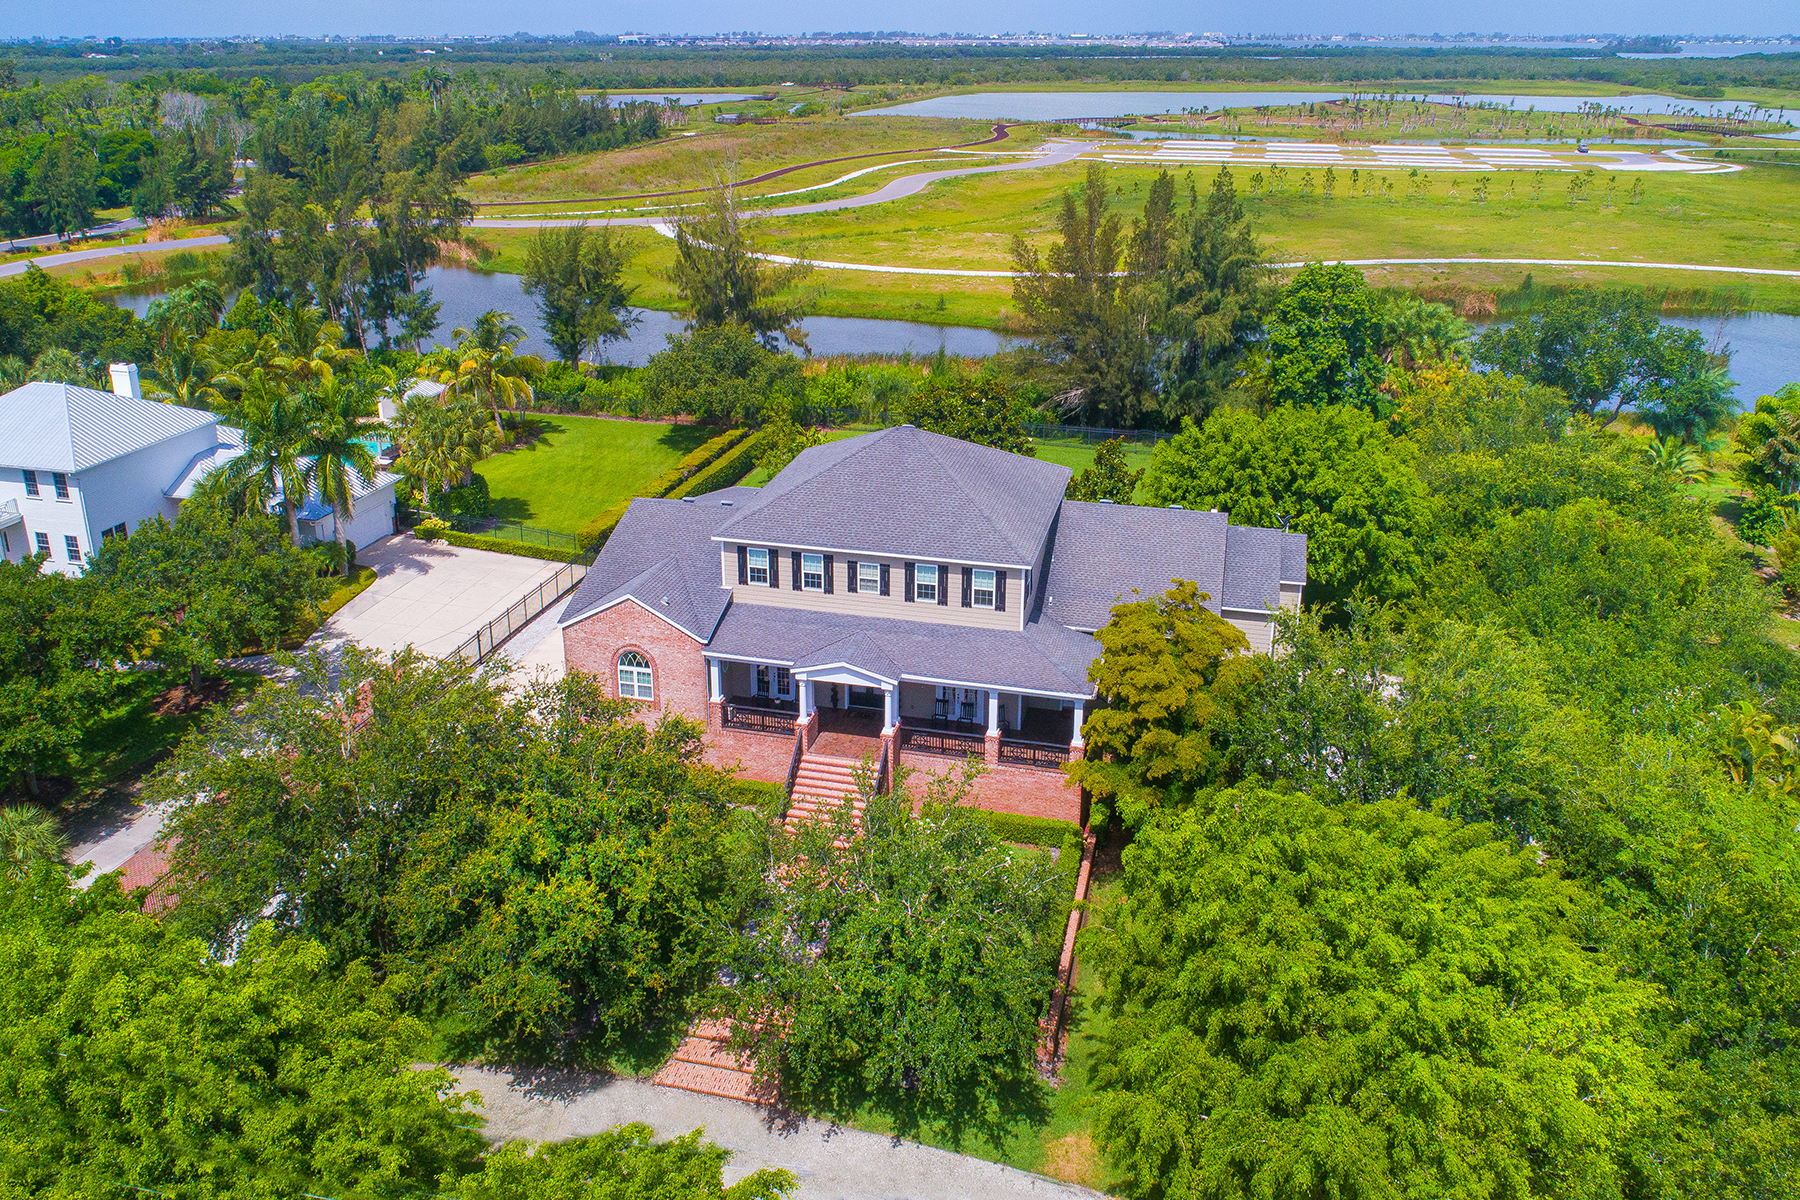 Single Family Homes for Sale at ROBINSON PRESERVE 1016 99th St Nw Bradenton, Florida 34209 United States